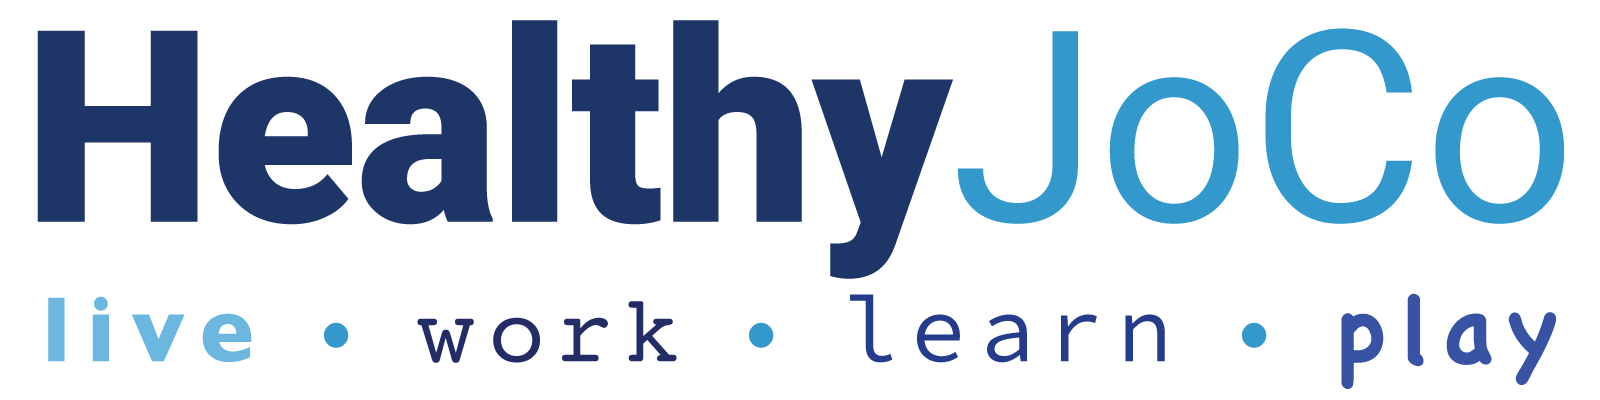 HealthJoCo logo noting live work learn play tagline